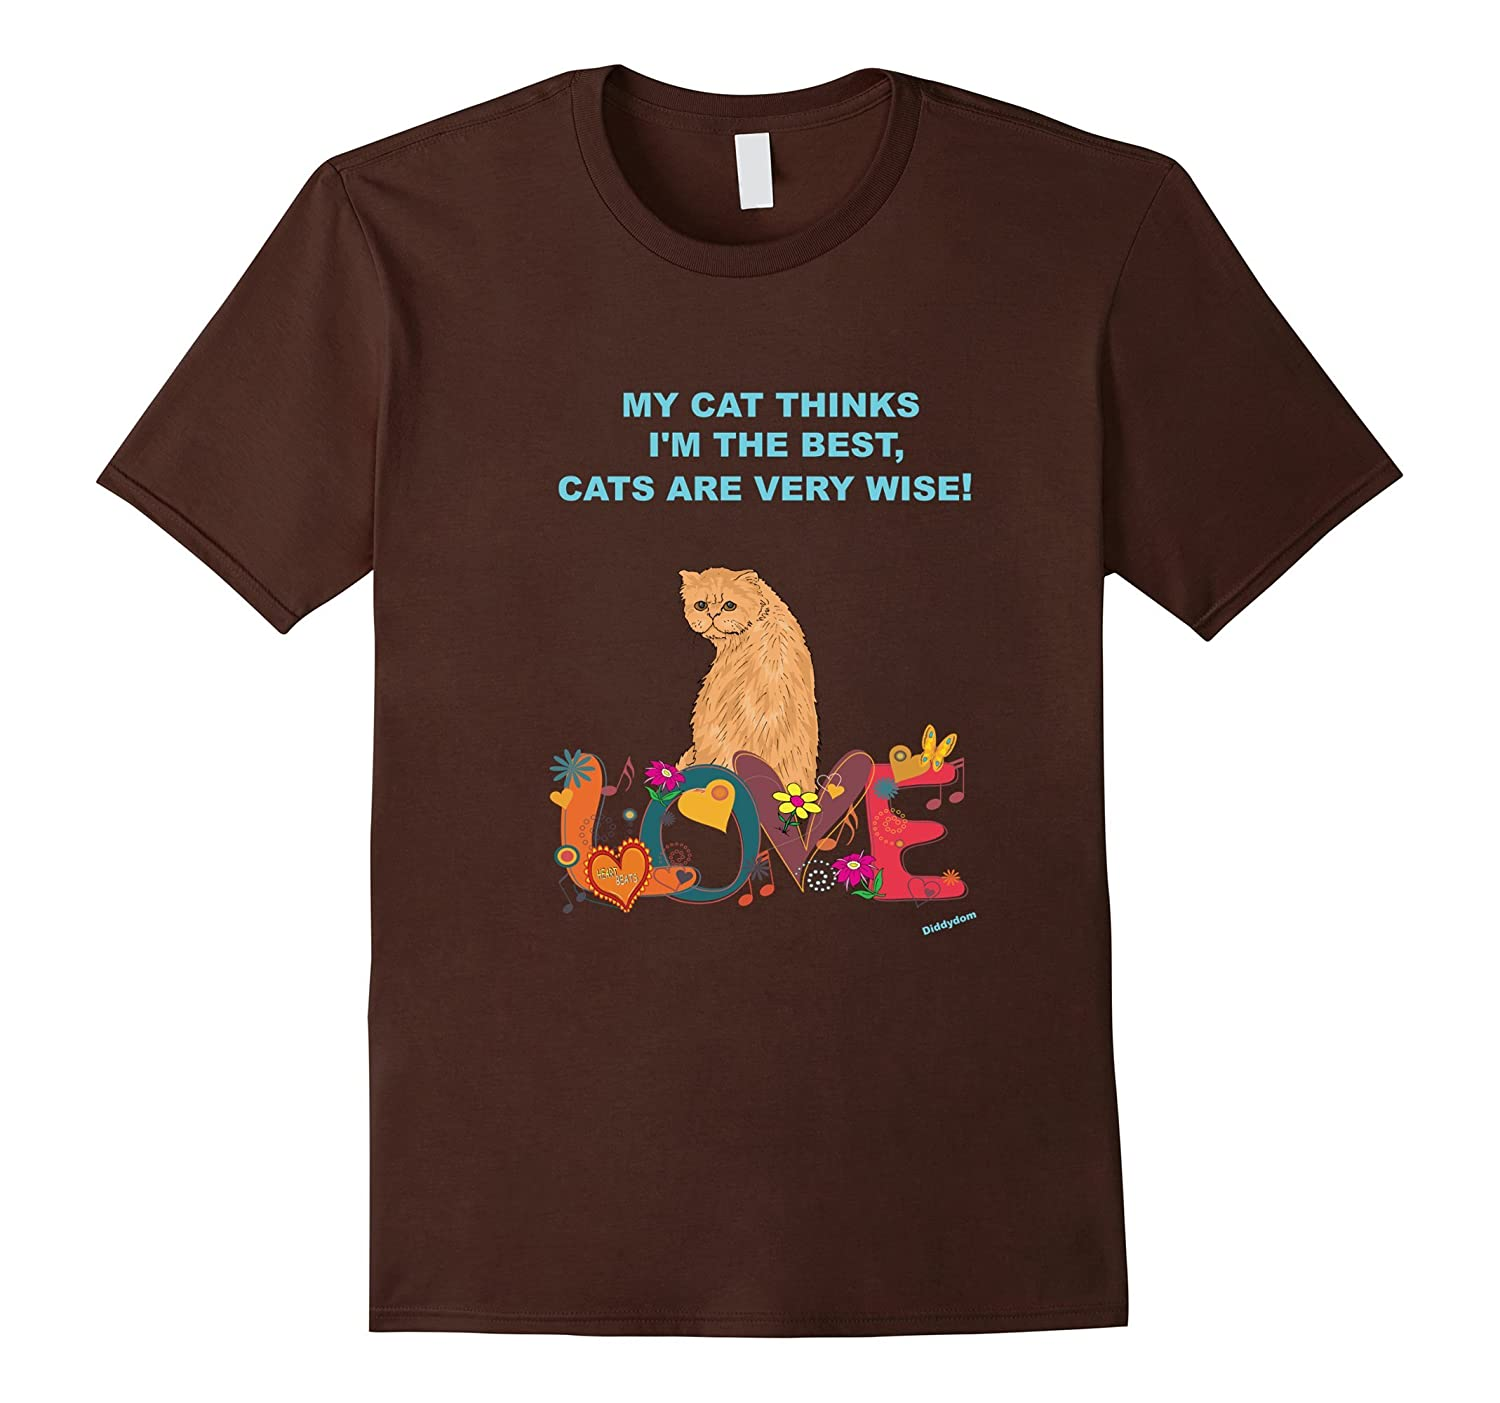 CATS ARE VERY WISE FUN FUNNY WOMEN YOUTH KIDS CAT T-SHIRT